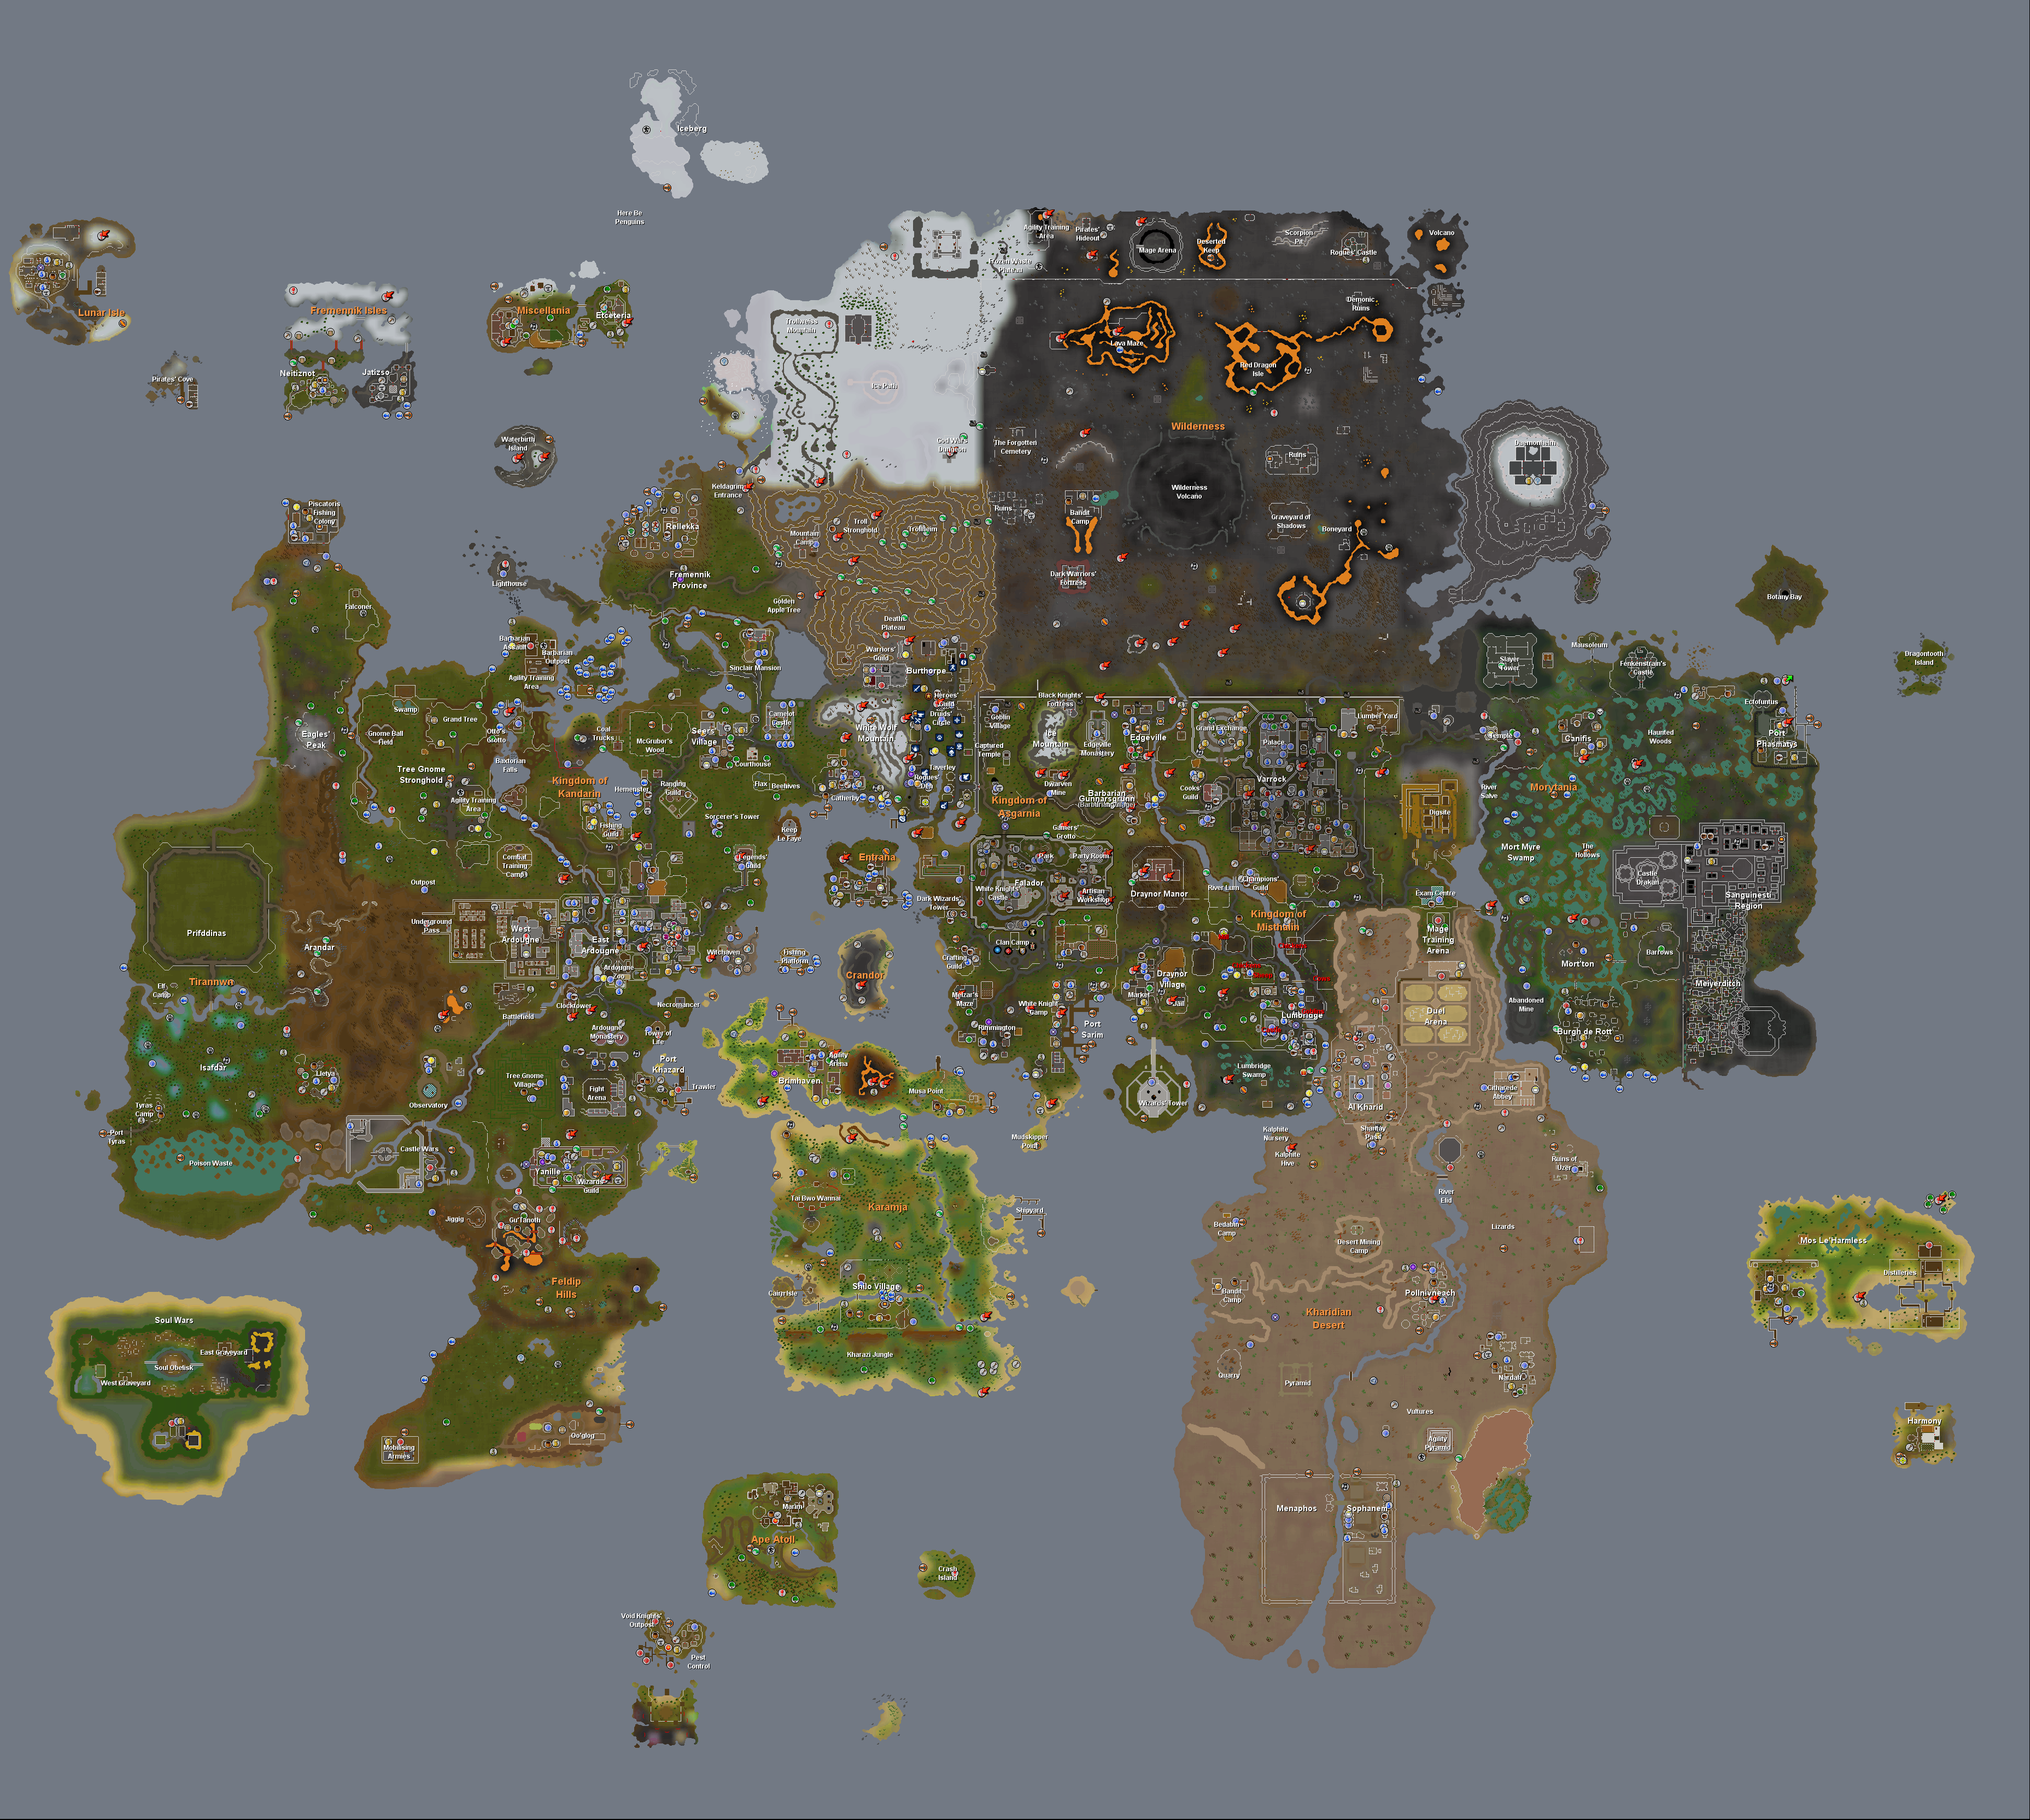 Image runescape worldmapg runescape wiki fandom powered by 1906 december 12 2012 publicscrutiny Image collections